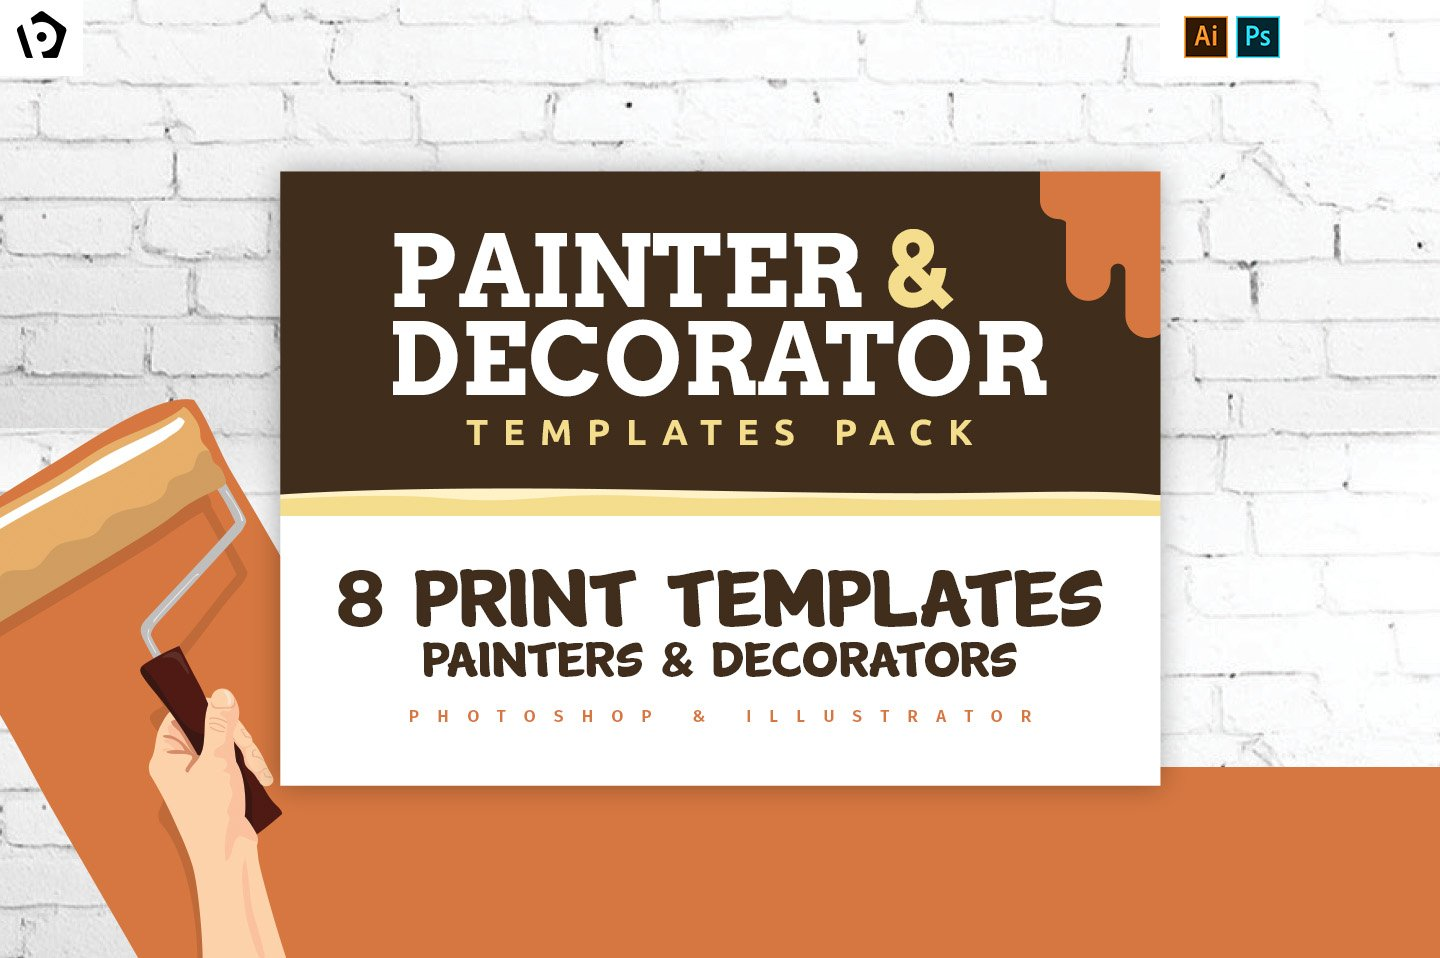 Painter & Decorator Templates Pack ~ Flyer Templates ...